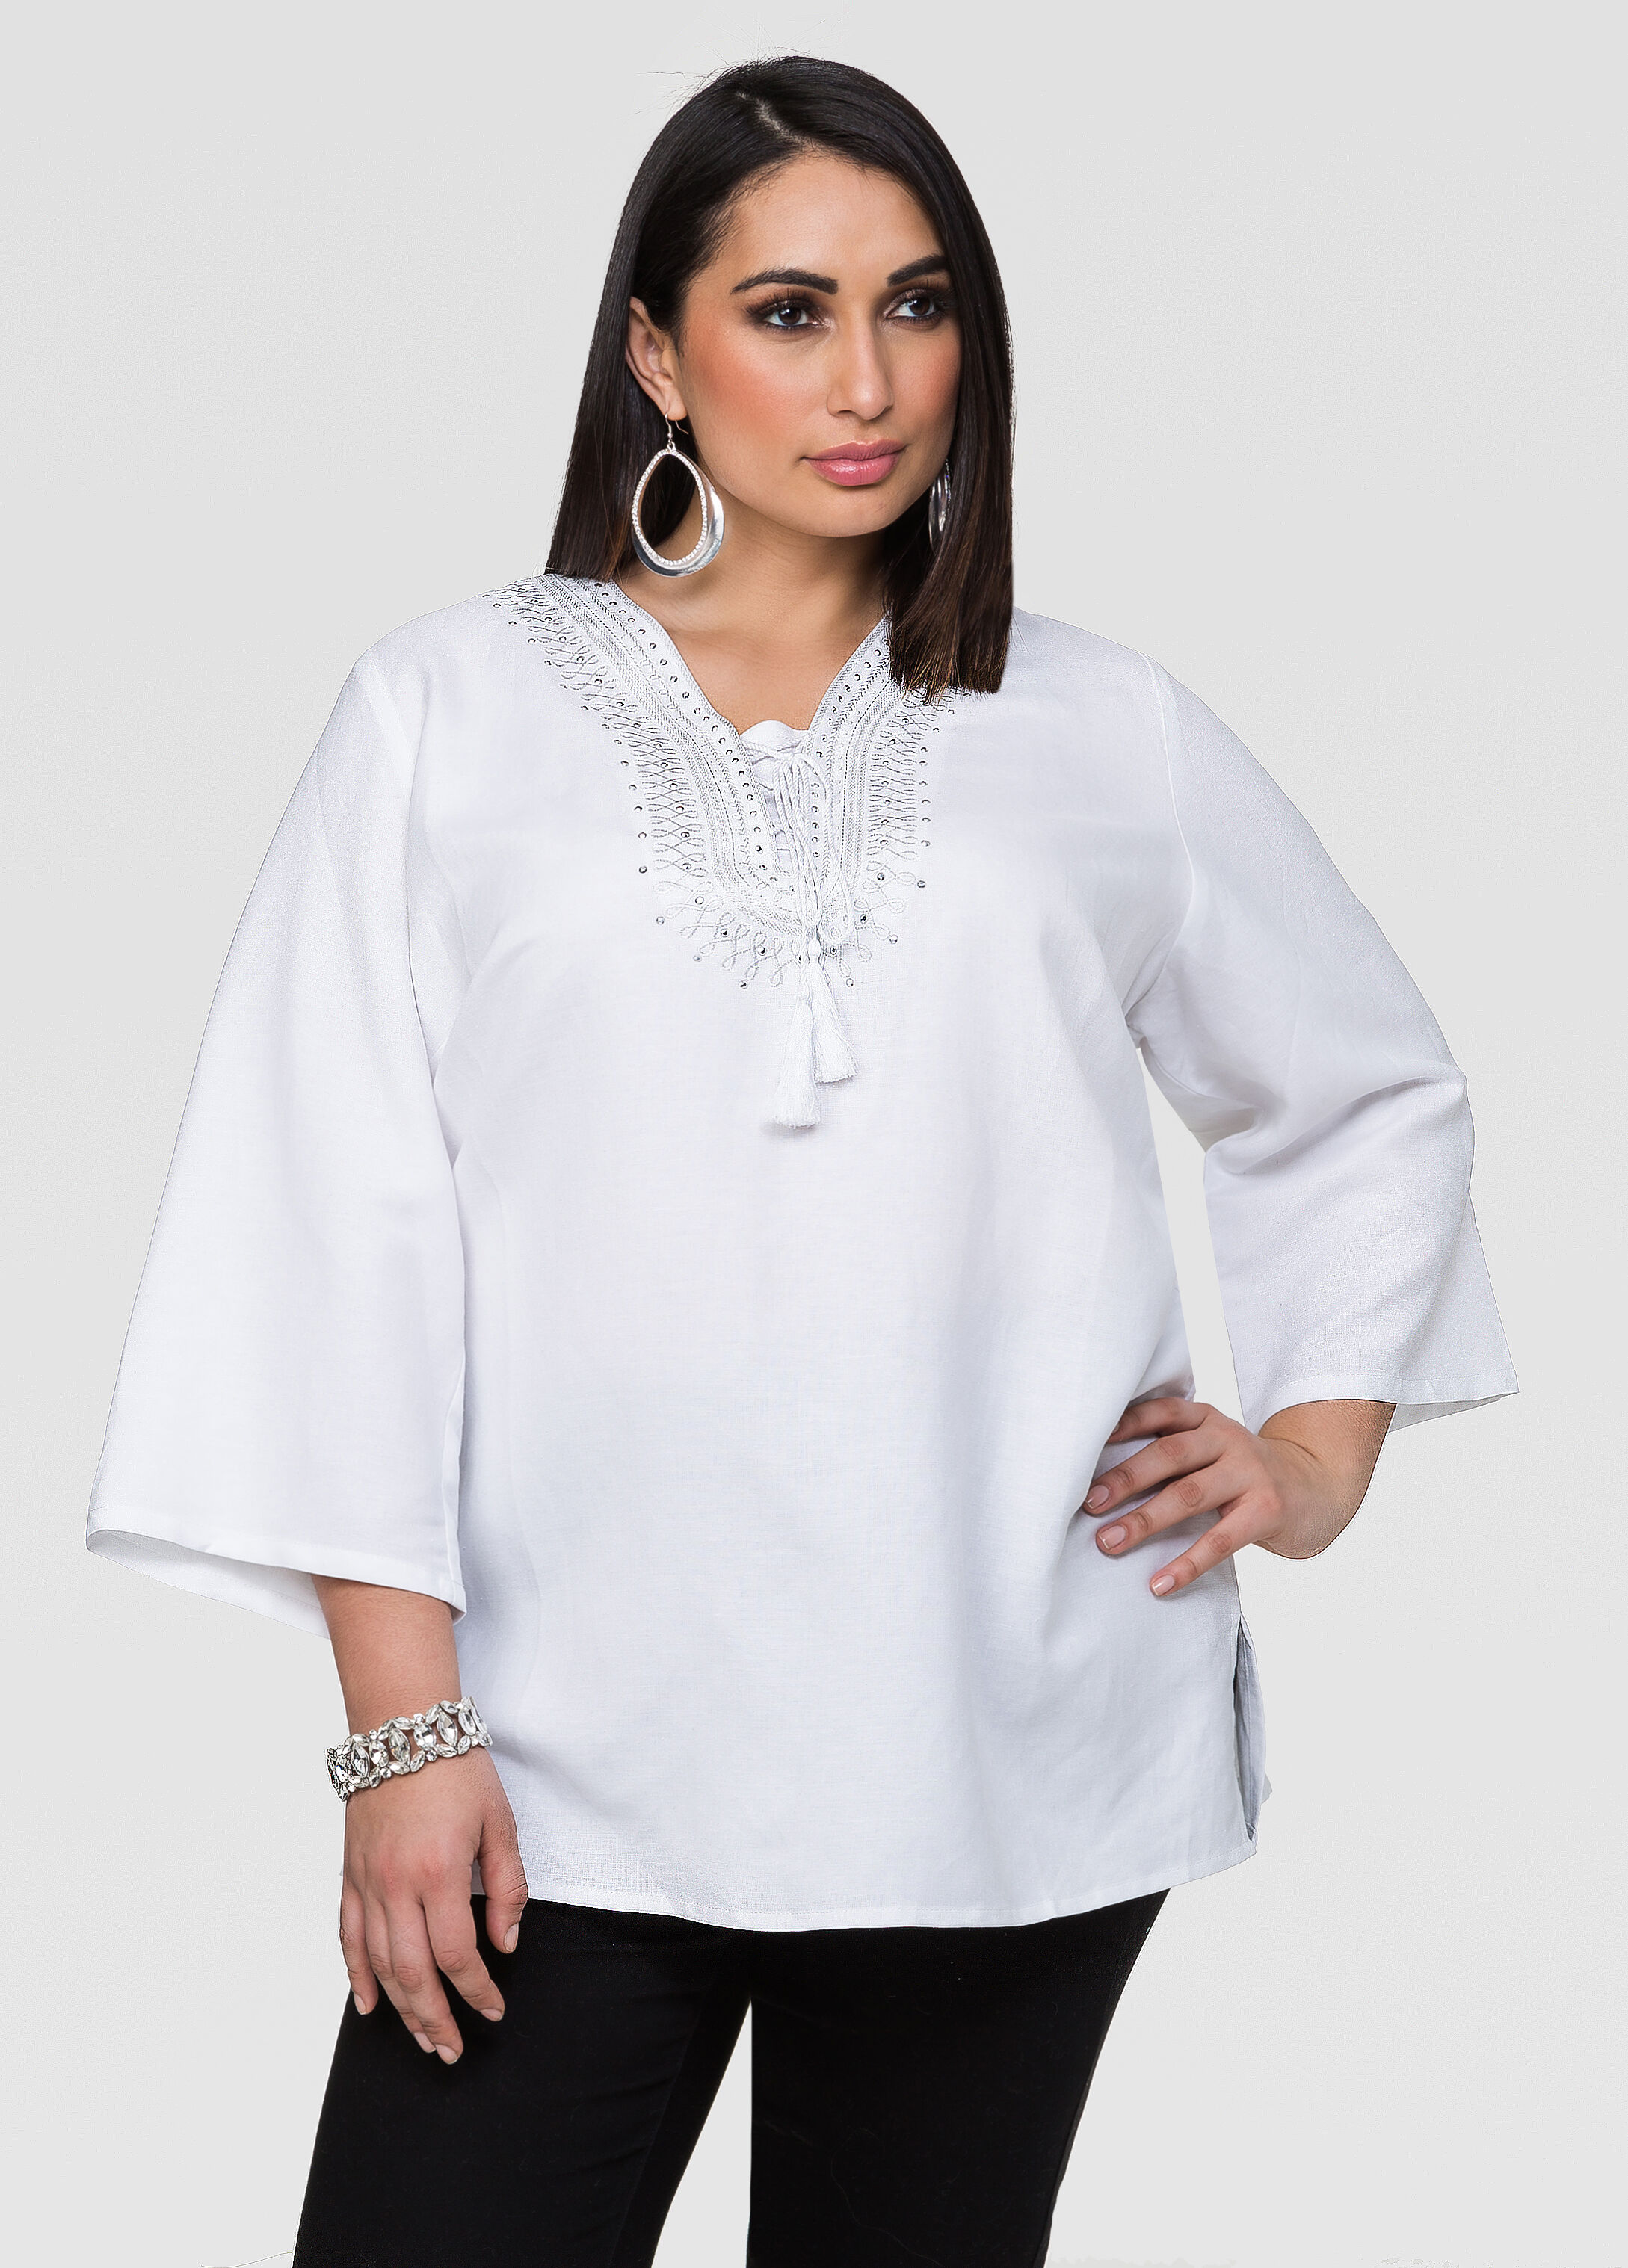 Linen Blend Lace-Up Tunic-Plus Size Shirts-Ashley Stewart-035-NC5185